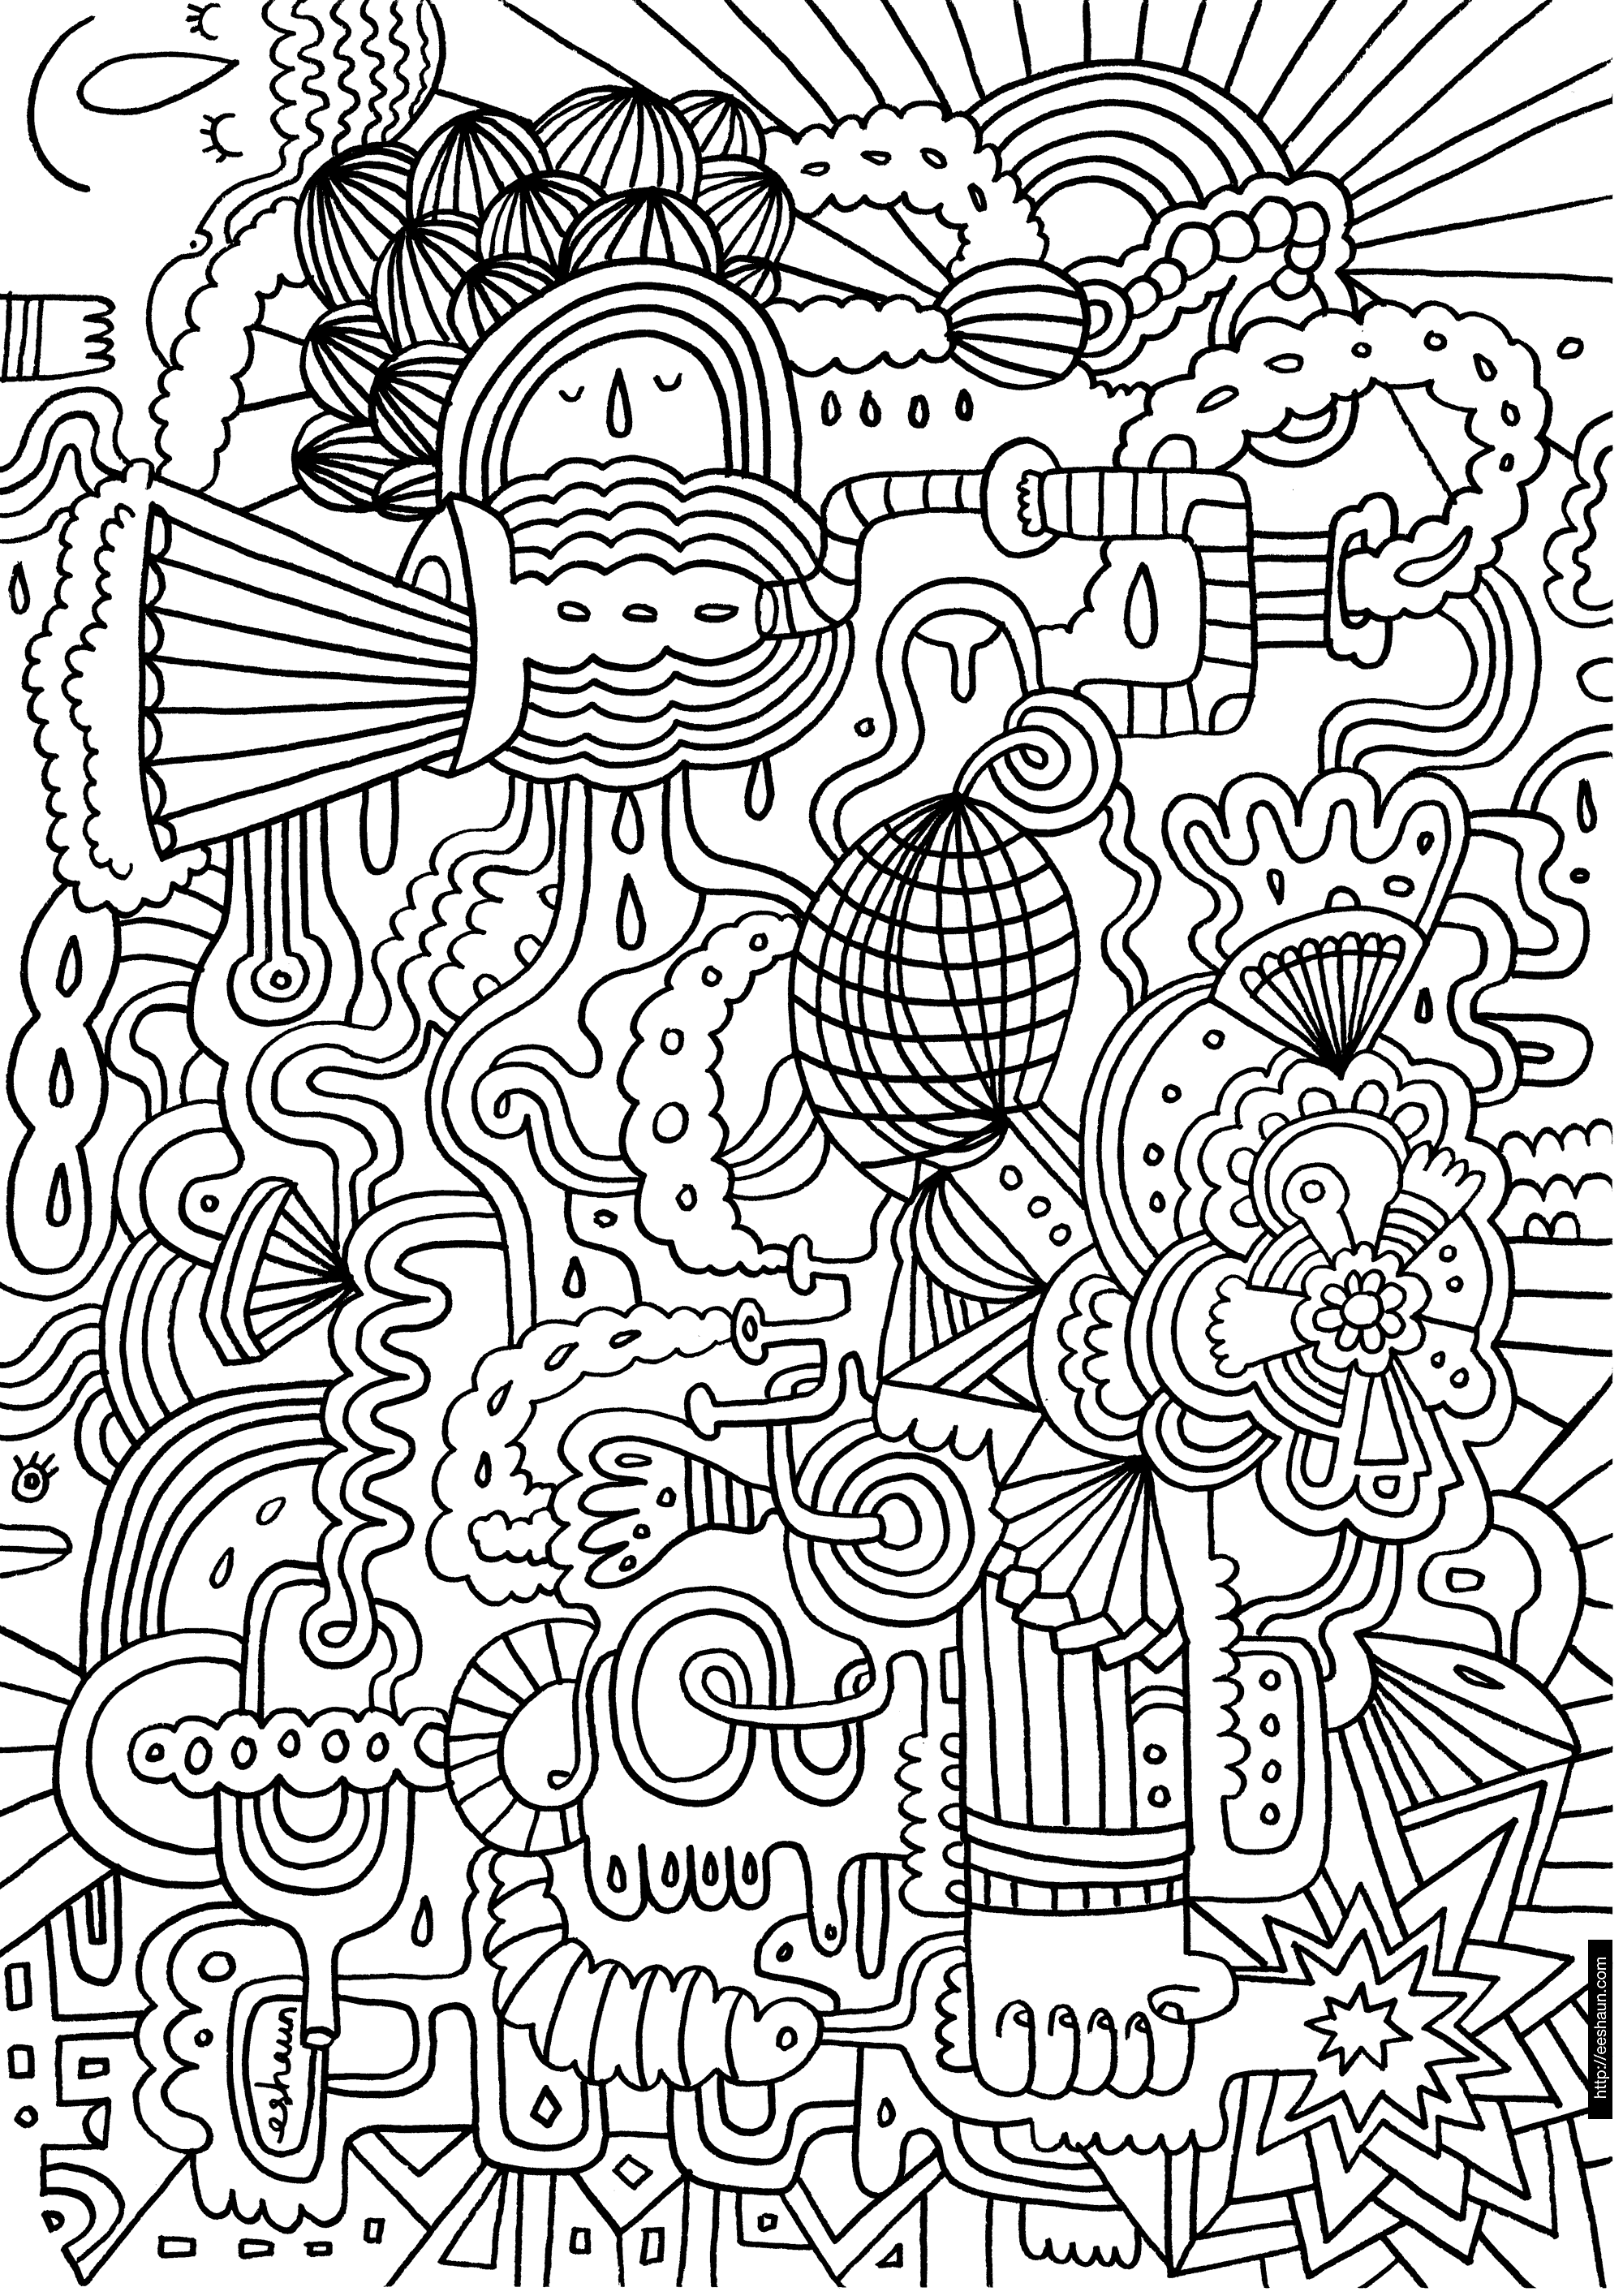 hard coloring pages Abstract coloring pages, Coloring